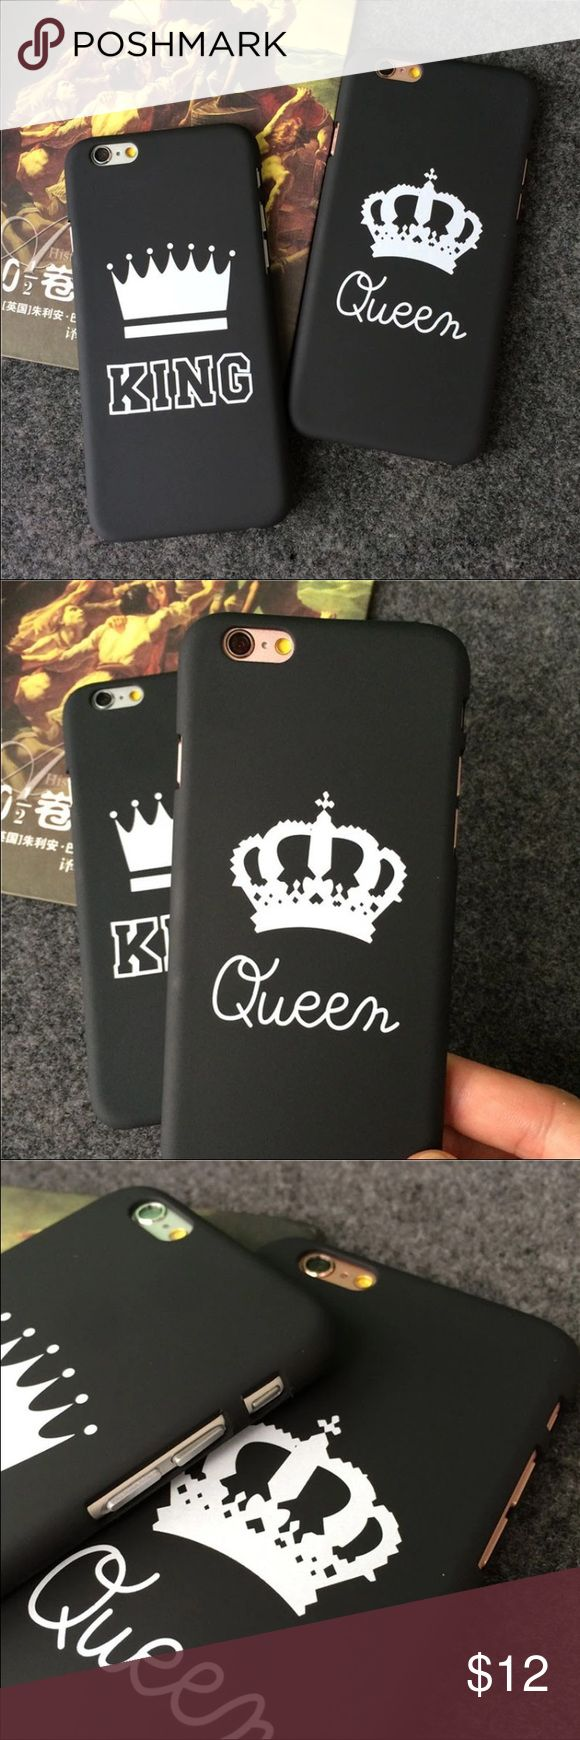 IPHONE CASE FOE COUPLES QUEEN & KING IPHONE CASE FOE COUPLES QUEEN & KING. AVAILABLE IN 4 DIFFERENT SIZES. IPHONE 6 6S, 6 PLUS 7 AND 7 PLUS LIMITED QUANTITY. ❤️ PLEASE SELET THE RIGHT SIZE, I'M NOT RESPONSIBLE IF YOU CHOOSE THE WRONG SIZE FOR YOUR PHONE. ❤️ THE PRICE IS FOR ONE CASE Accessories Phone Cases